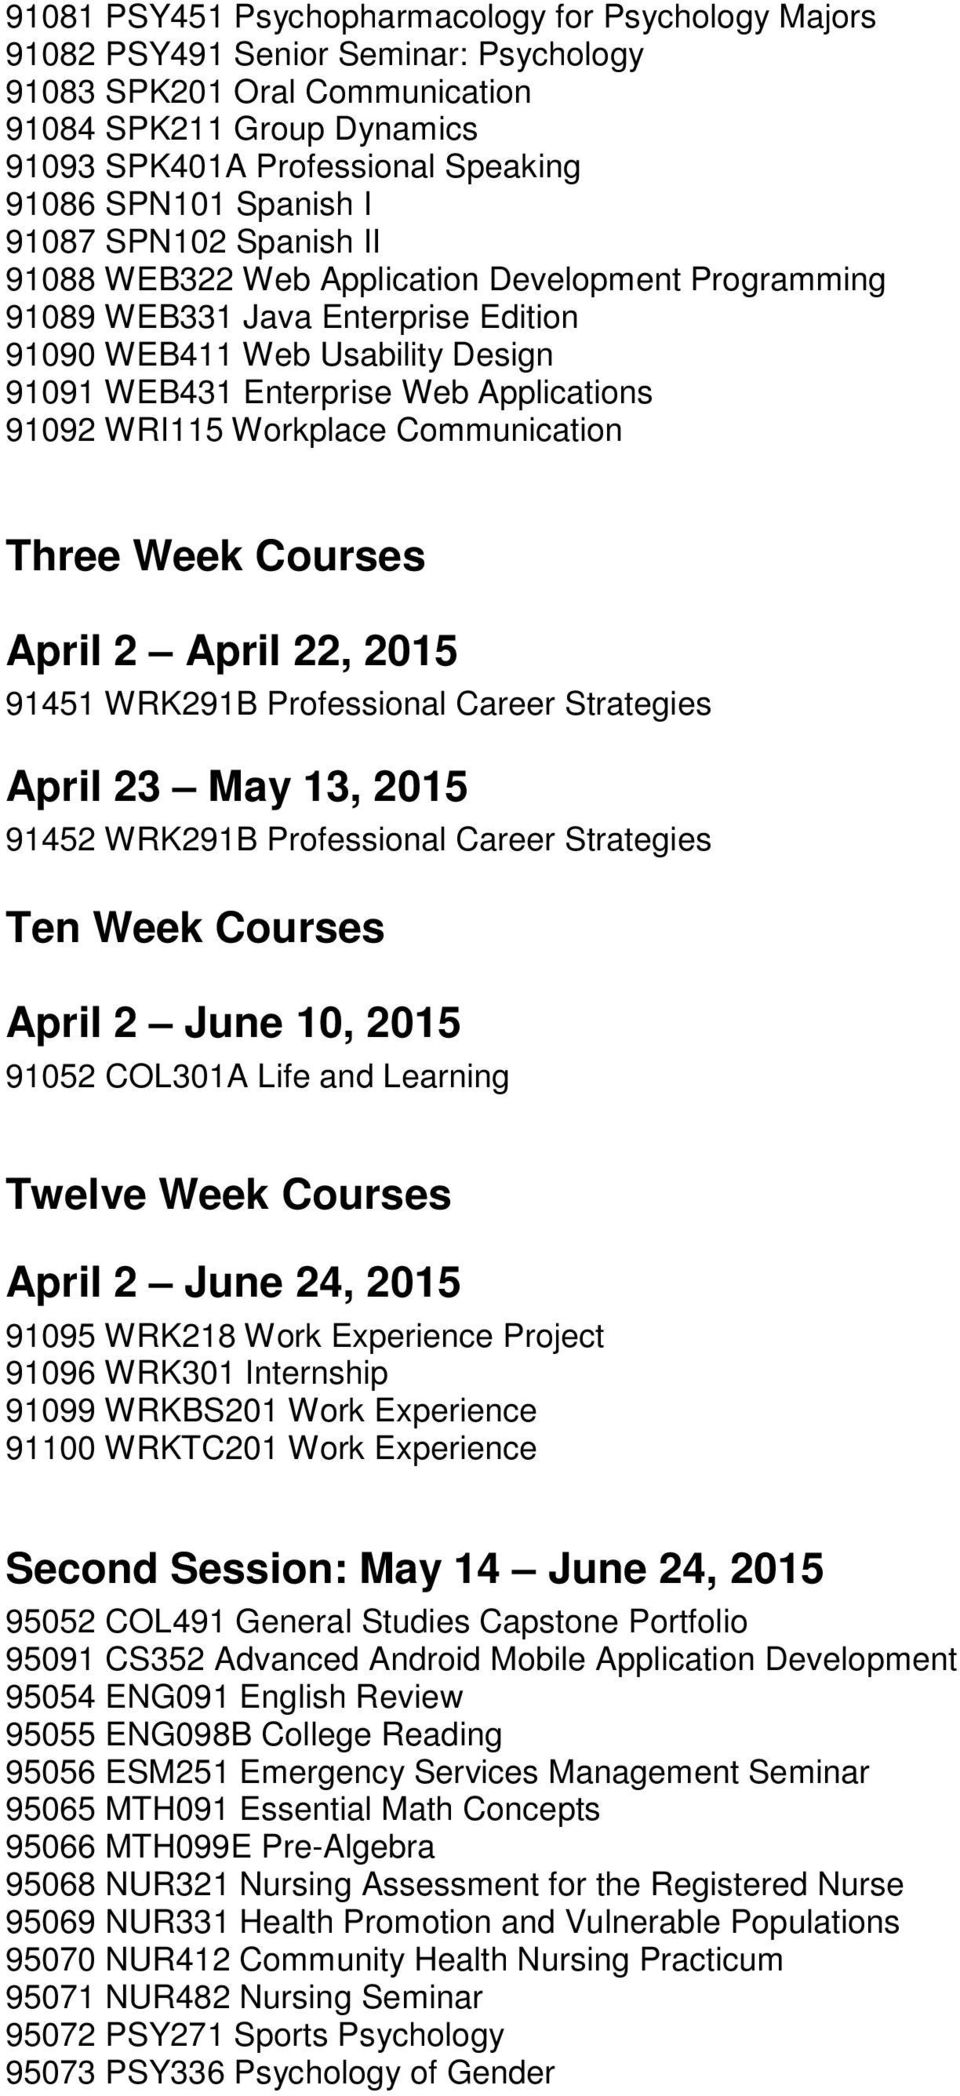 Applications 91092 WRI115 Workplace Communication Three Week Courses April 2 April 22, 2015 91451 WRK291B Professional Career Strategies April 23 May 13, 2015 91452 WRK291B Professional Career